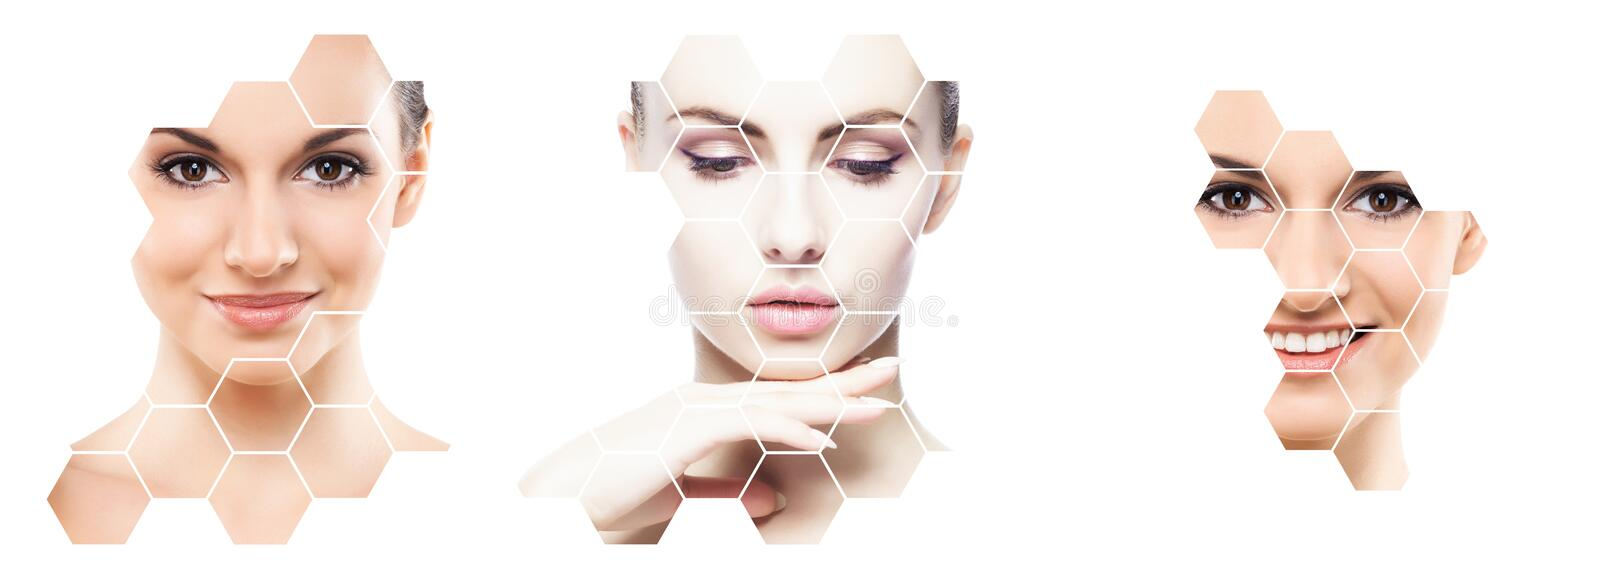 Collage of female portraits. Healthy faces of young women. Spa, face lifting, plastic surgery collage concept. stock photography